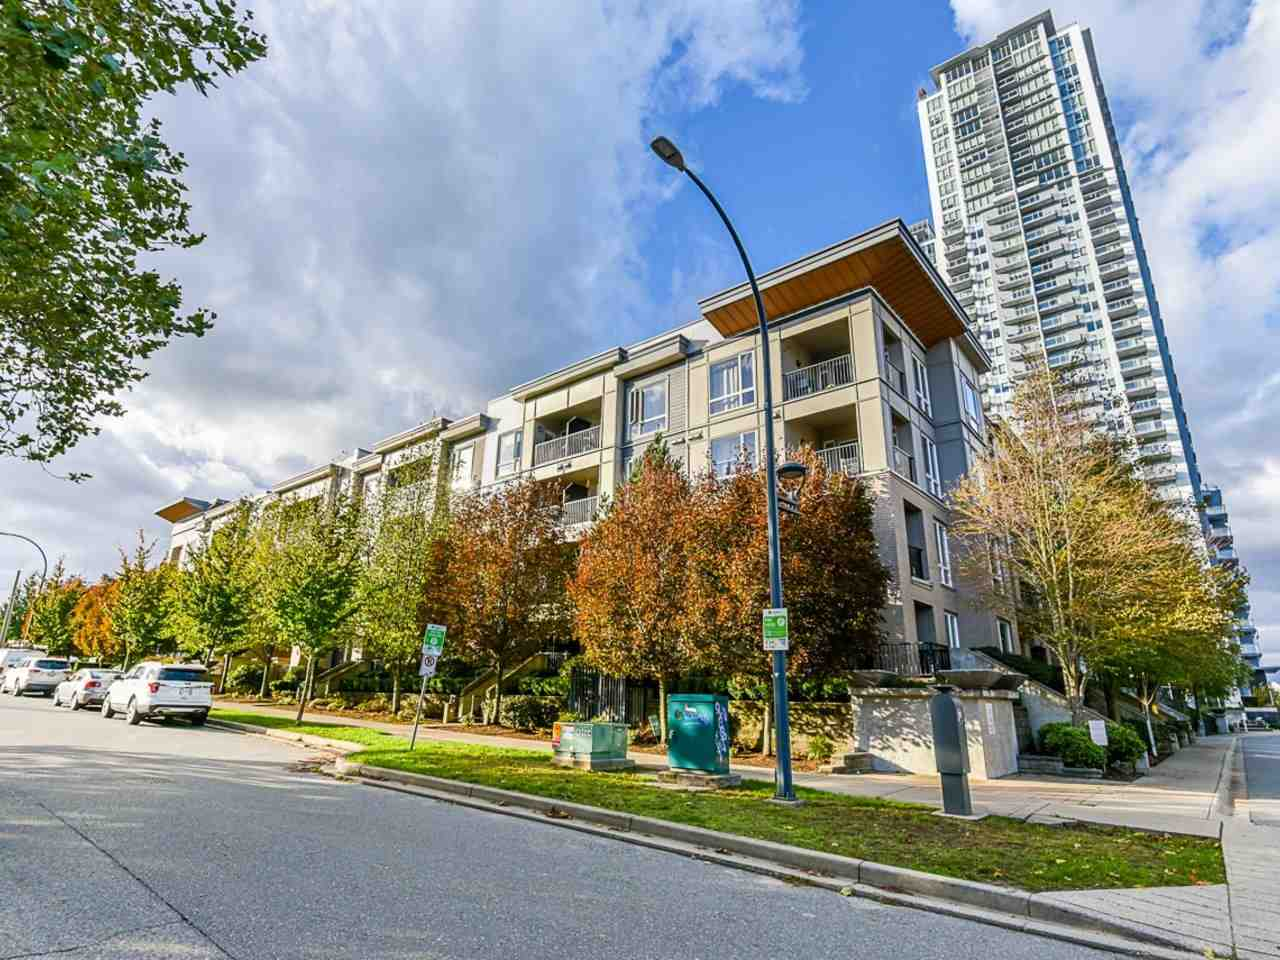 329 13321 102A AVENUE - Whalley Apartment/Condo for sale, 1 Bedroom (R2508611) - #2